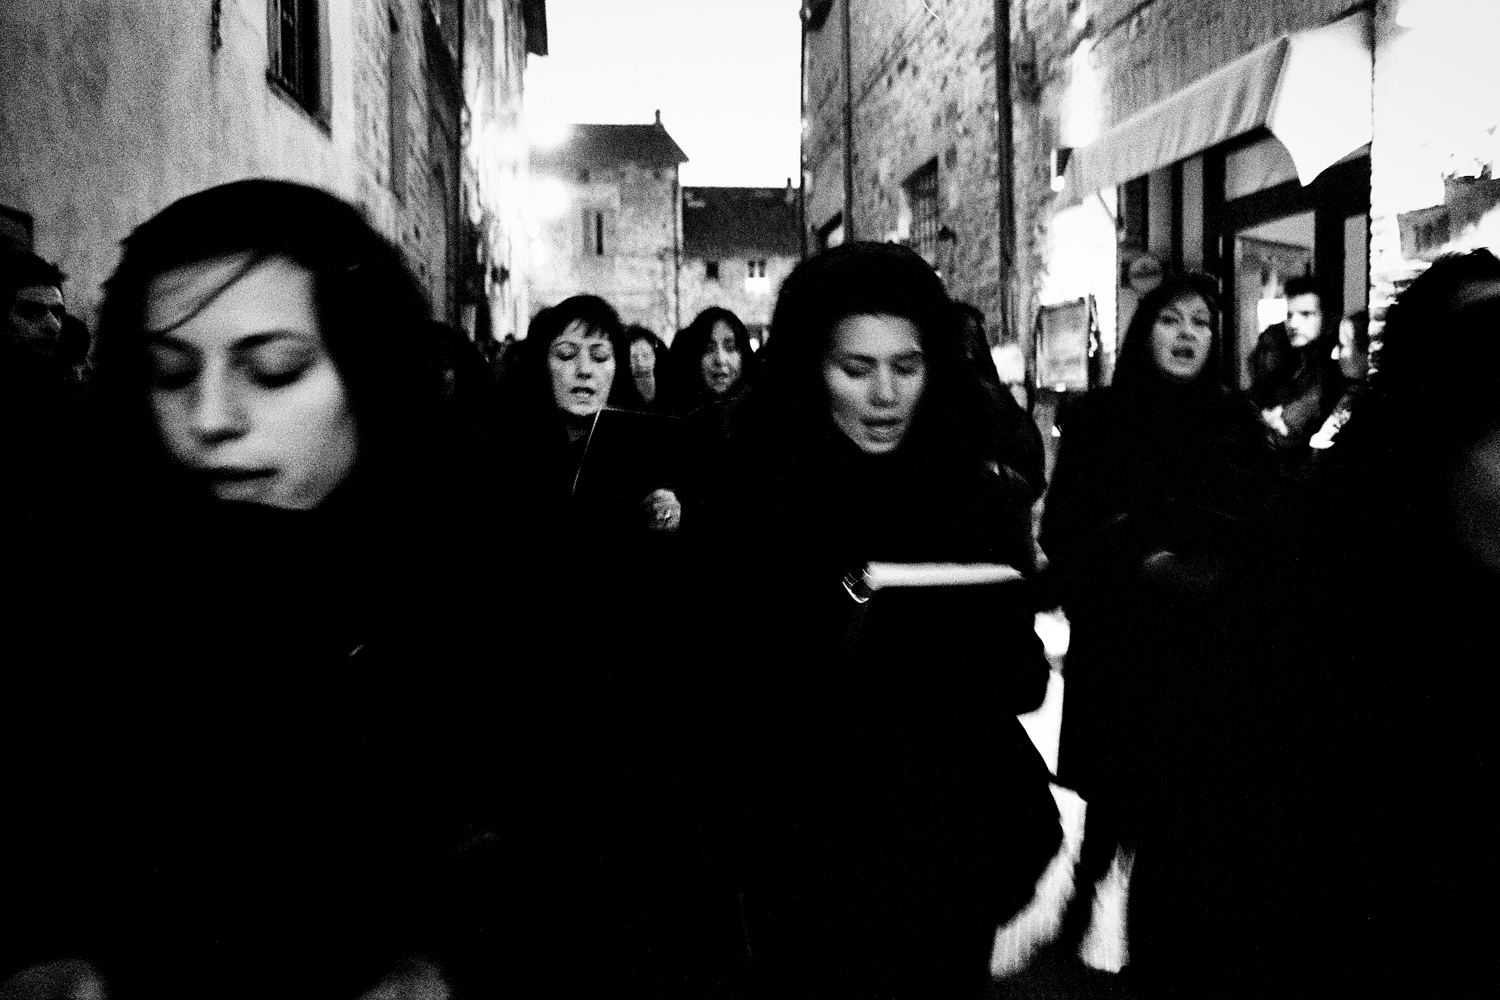 Corpus Christi - A documentation of one of the most ancient and still existing procession in Italy.